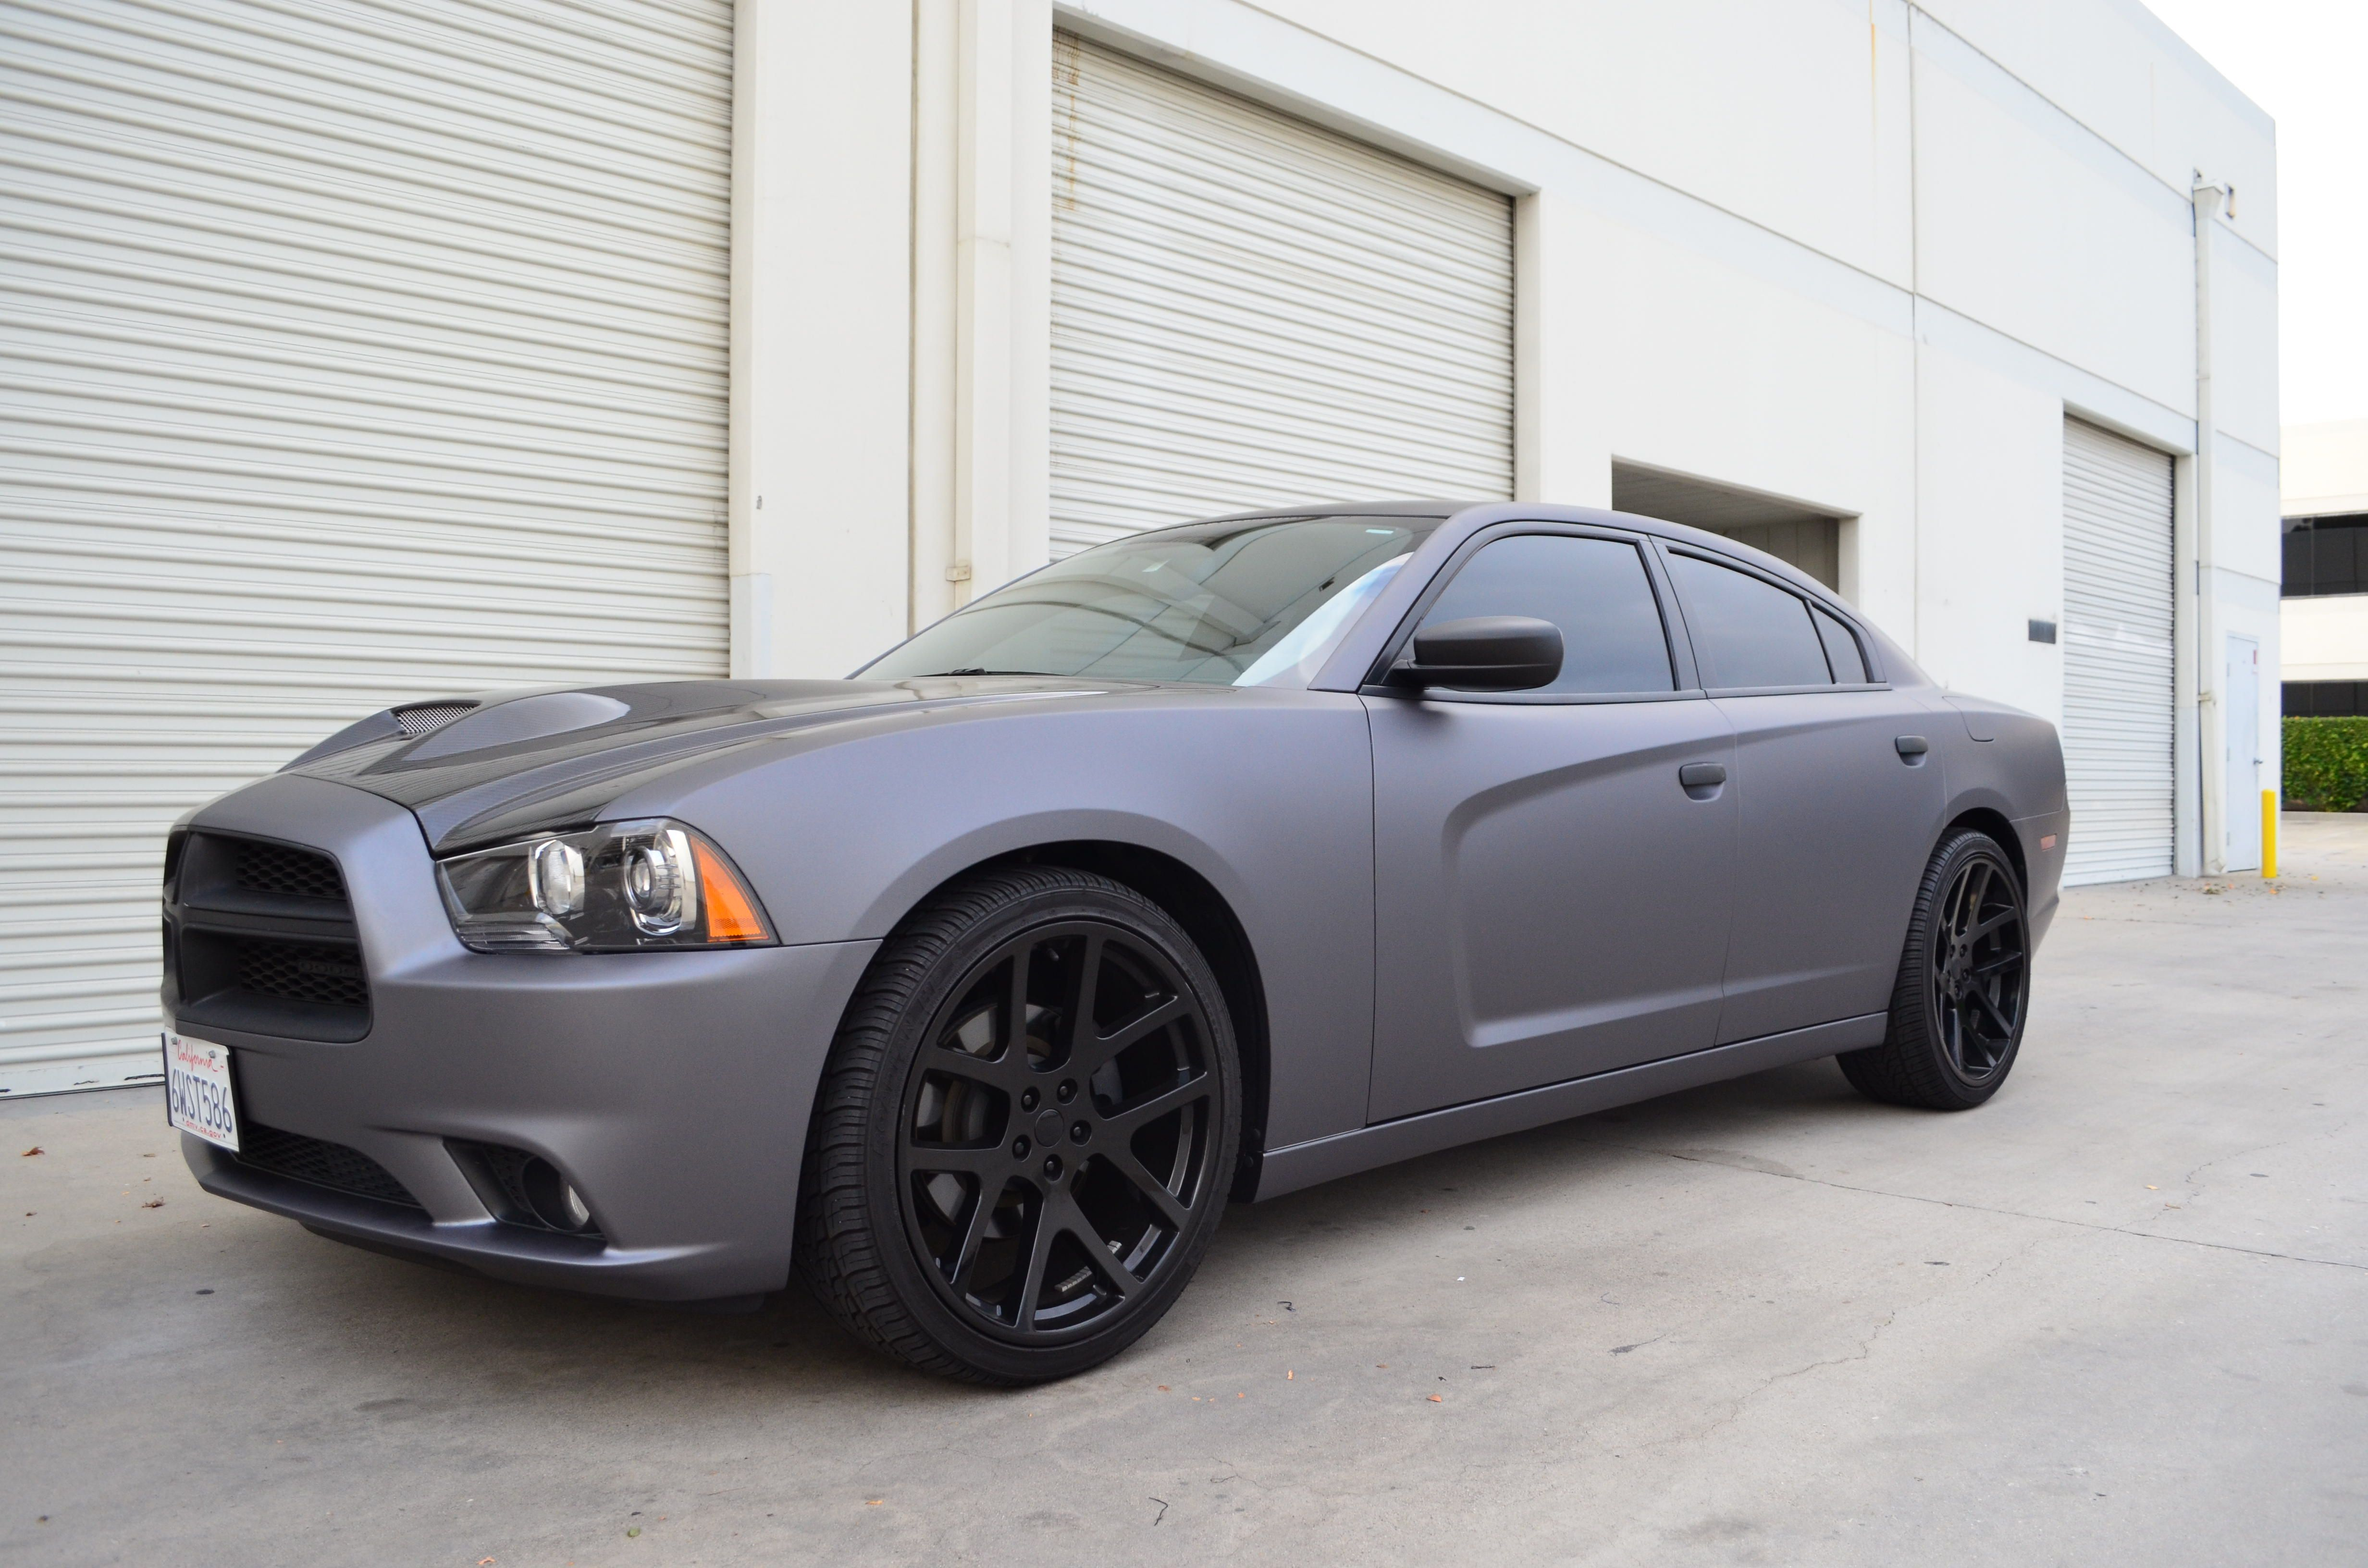 Rims For Hondas >> Best 25+ 2012 charger ideas on Pinterest | 2012 dodge challenger, 2012 dodge charger and 2010 ...